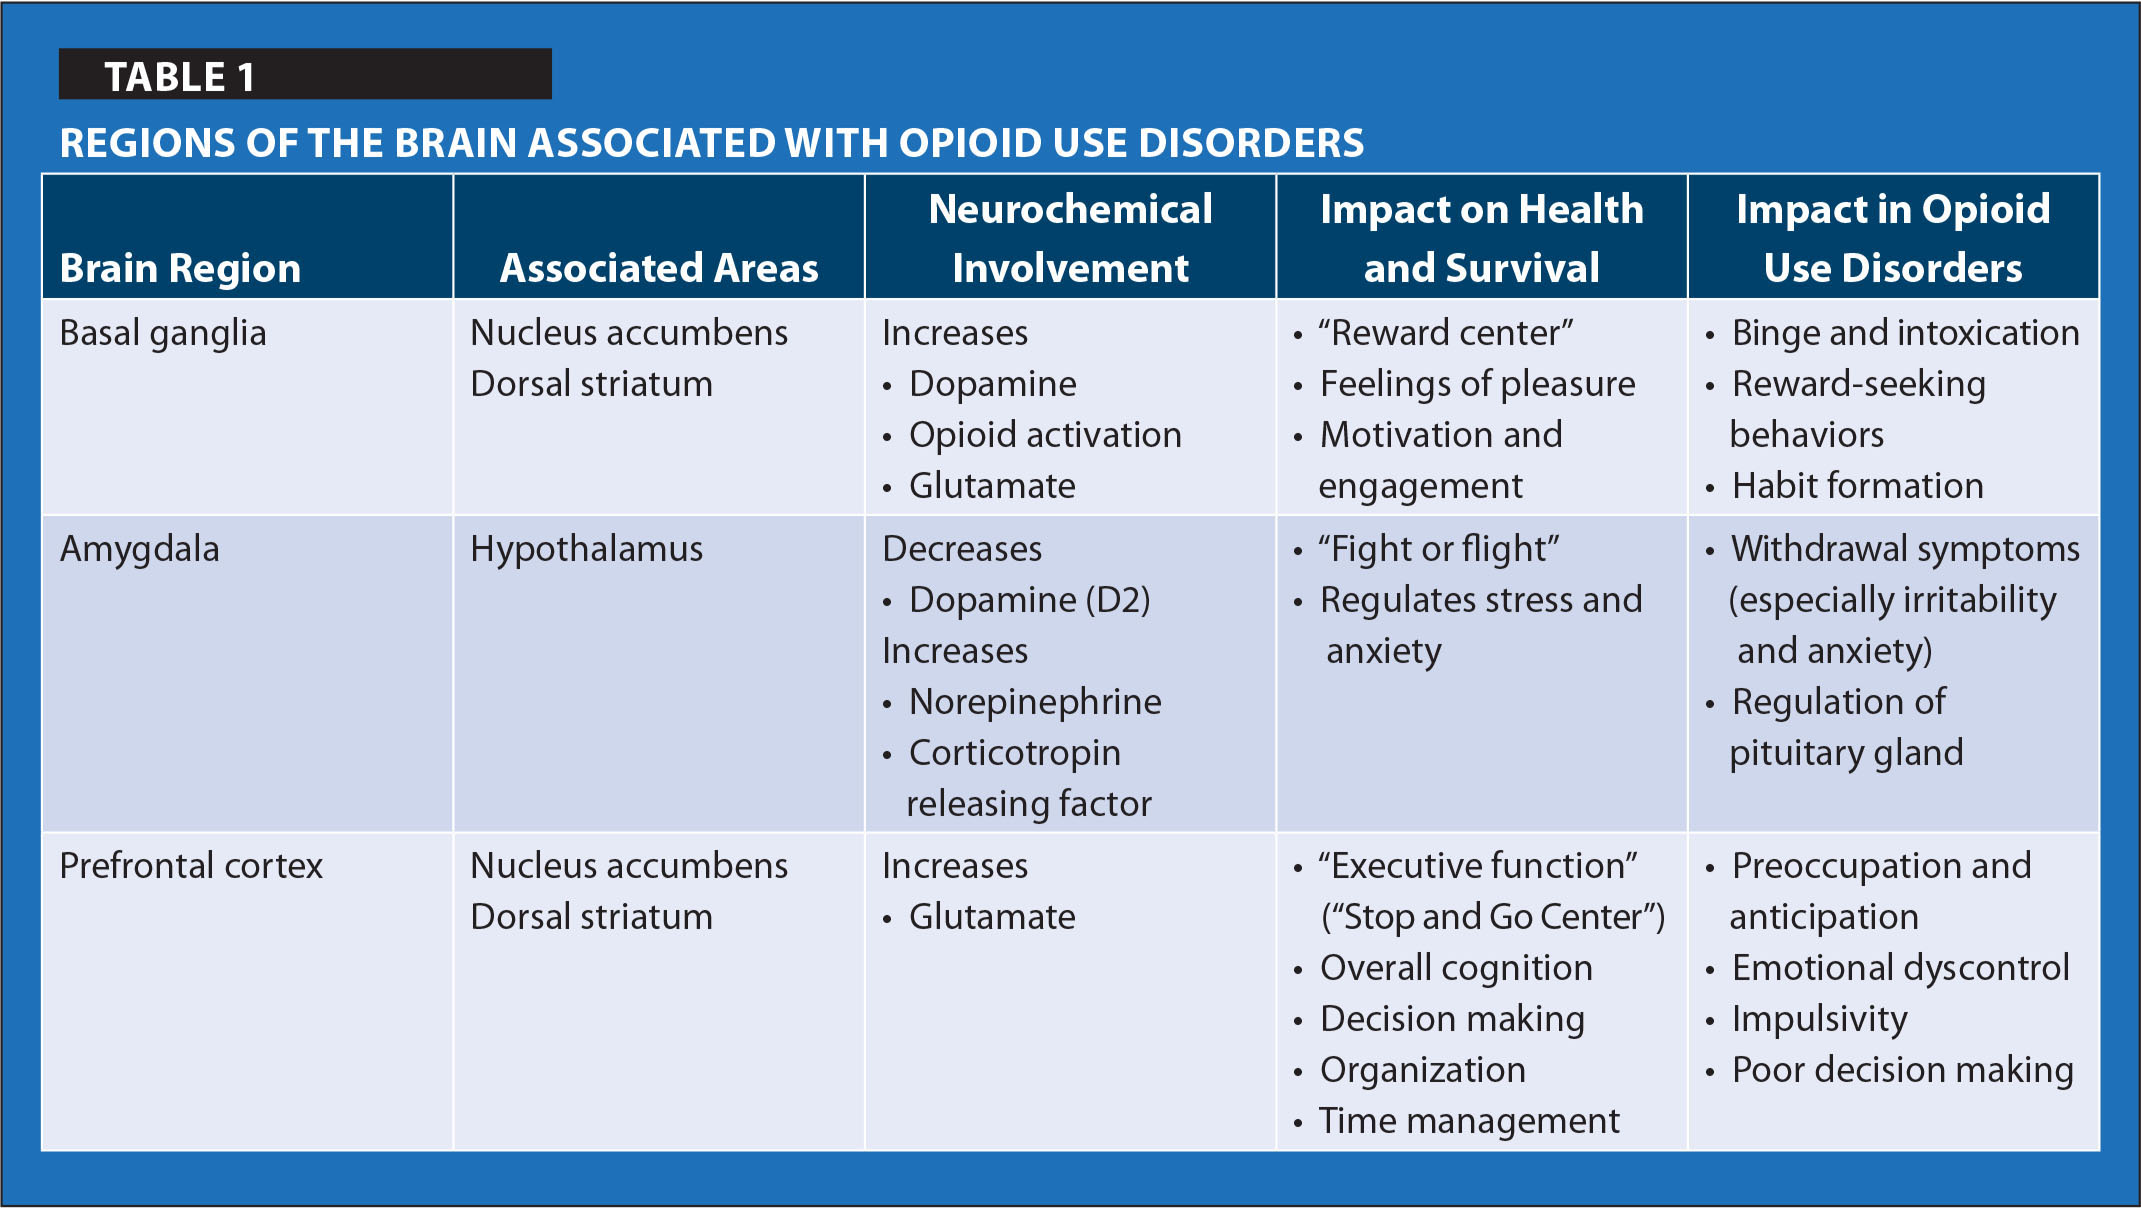 Regions of the Brain Associated with Opioid use Disorders